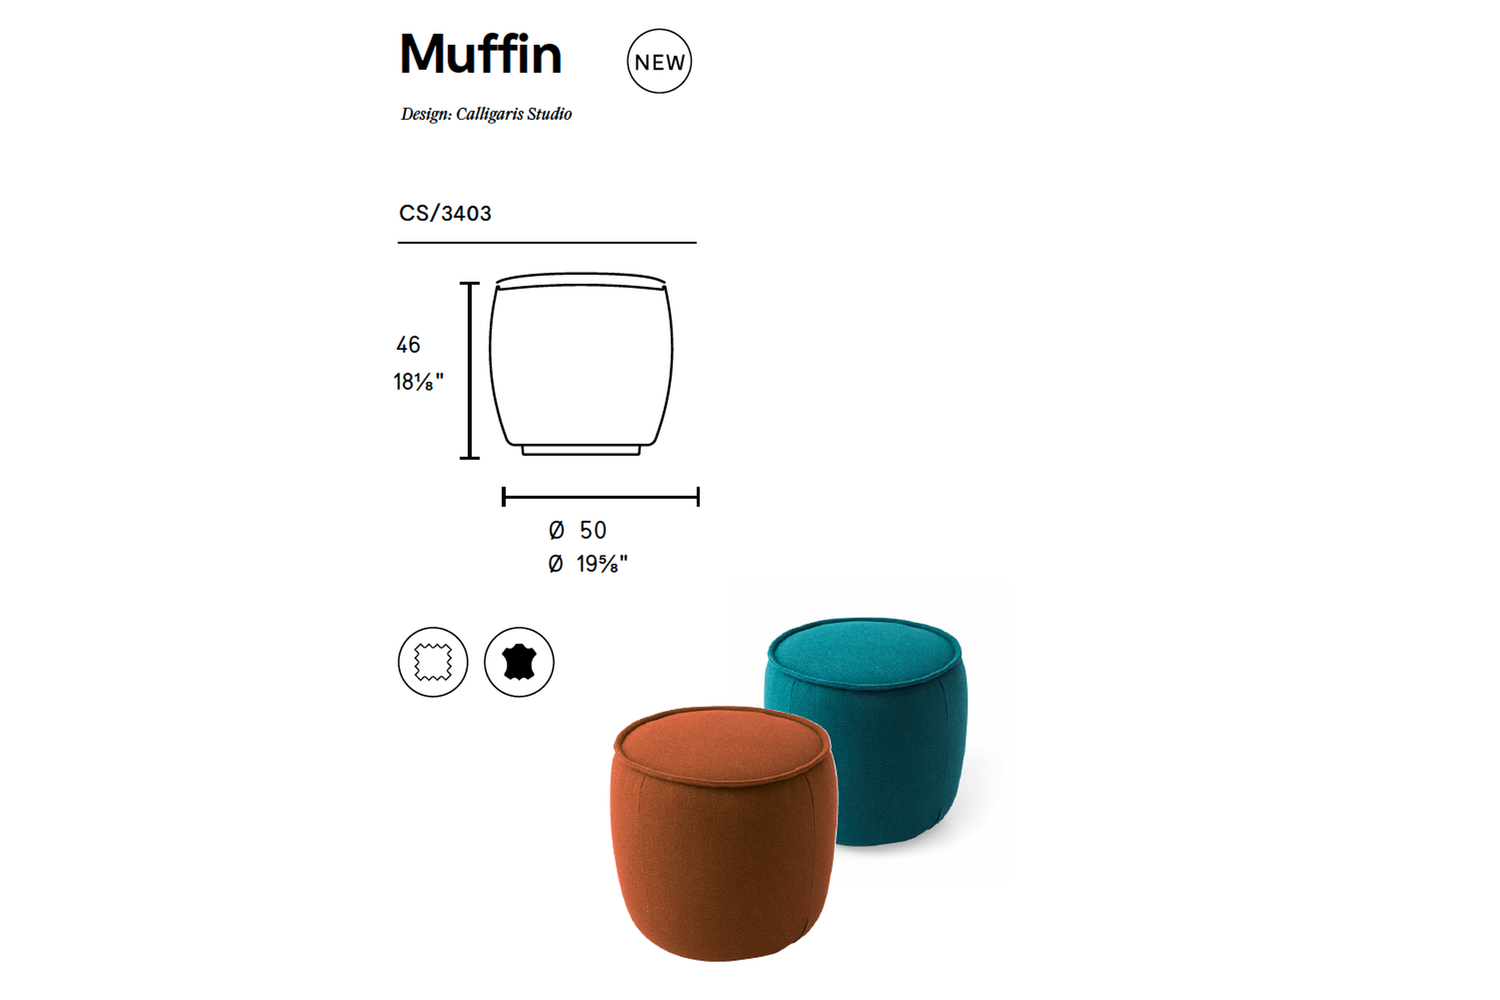 MUFFIN Ottoman Objects Calliagris Schematics 2018 MUFFIN-Ottoman_Objects_Calliagris_Schematics_2018.png